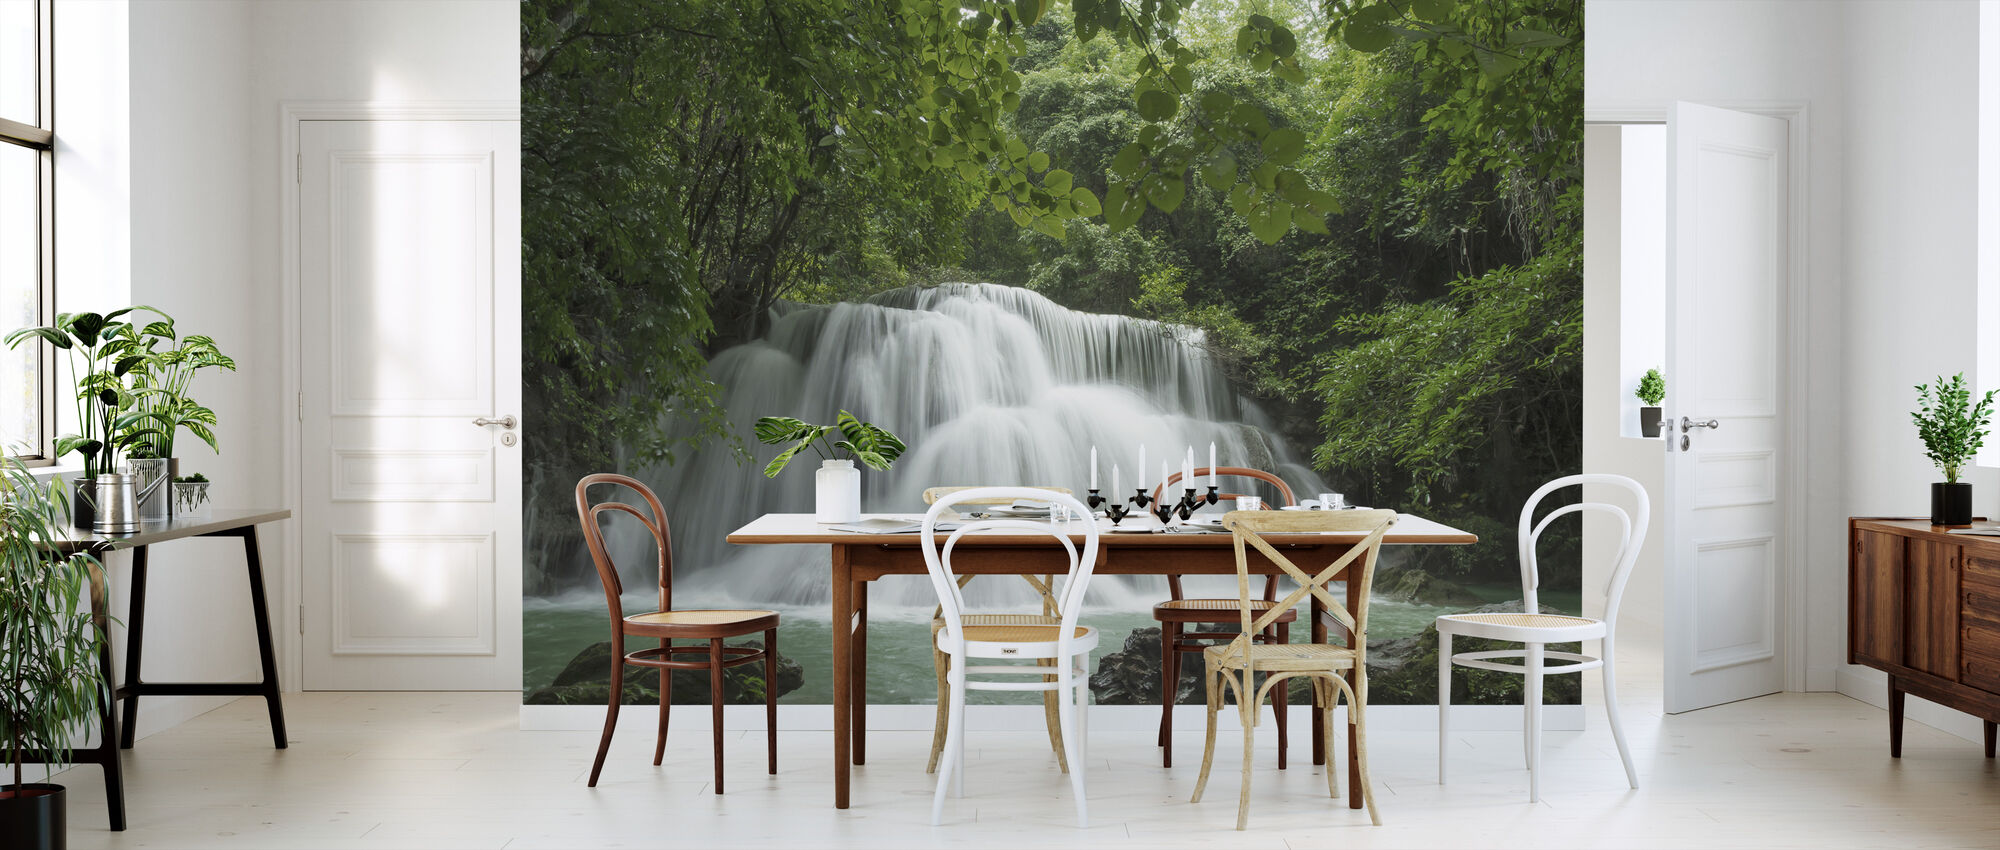 Beautiful Waterfall in Thailand - Wallpaper - Kitchen